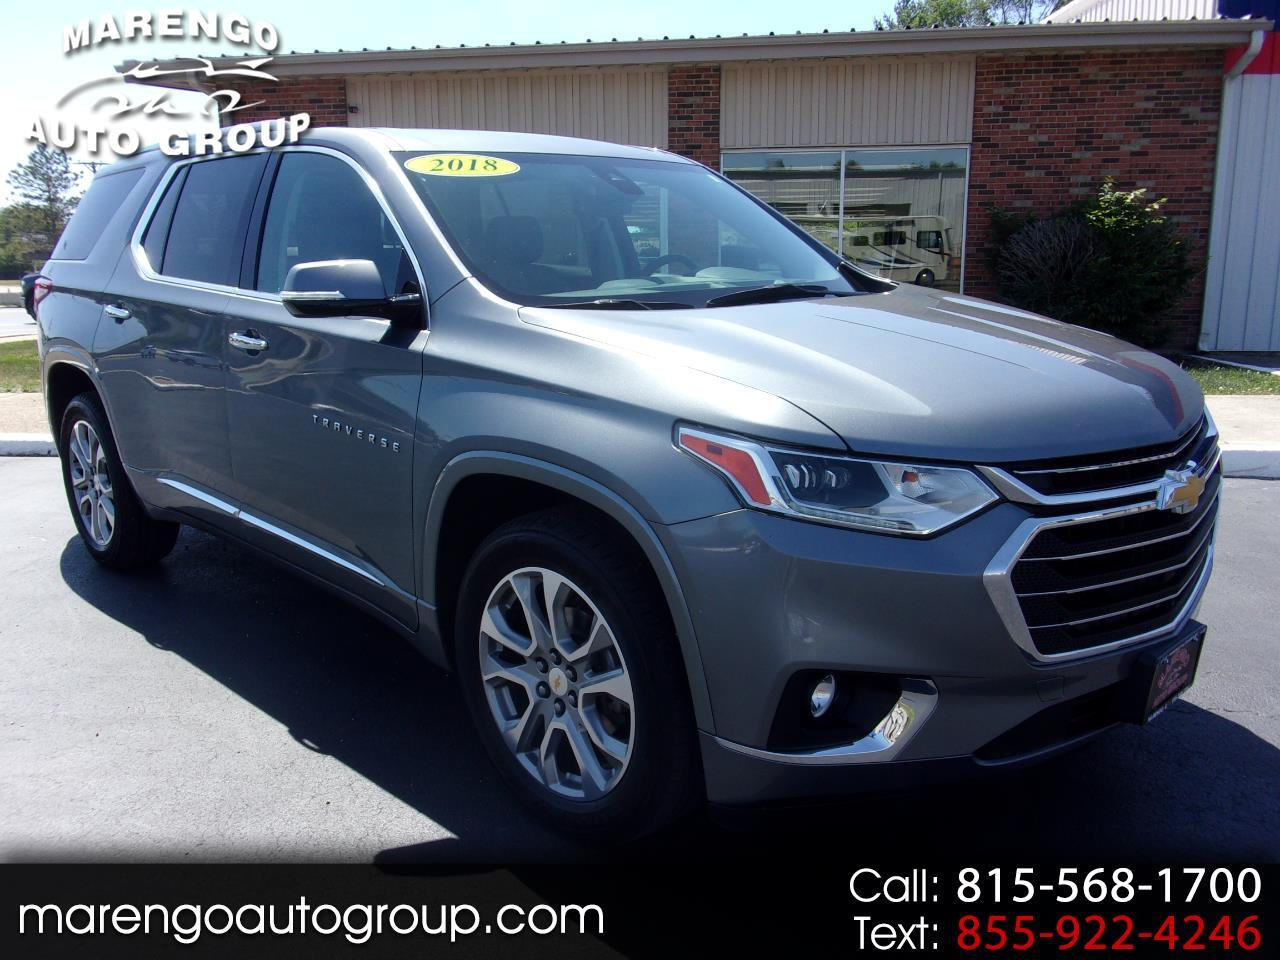 used 2018 Chevrolet Traverse car, priced at $30,996